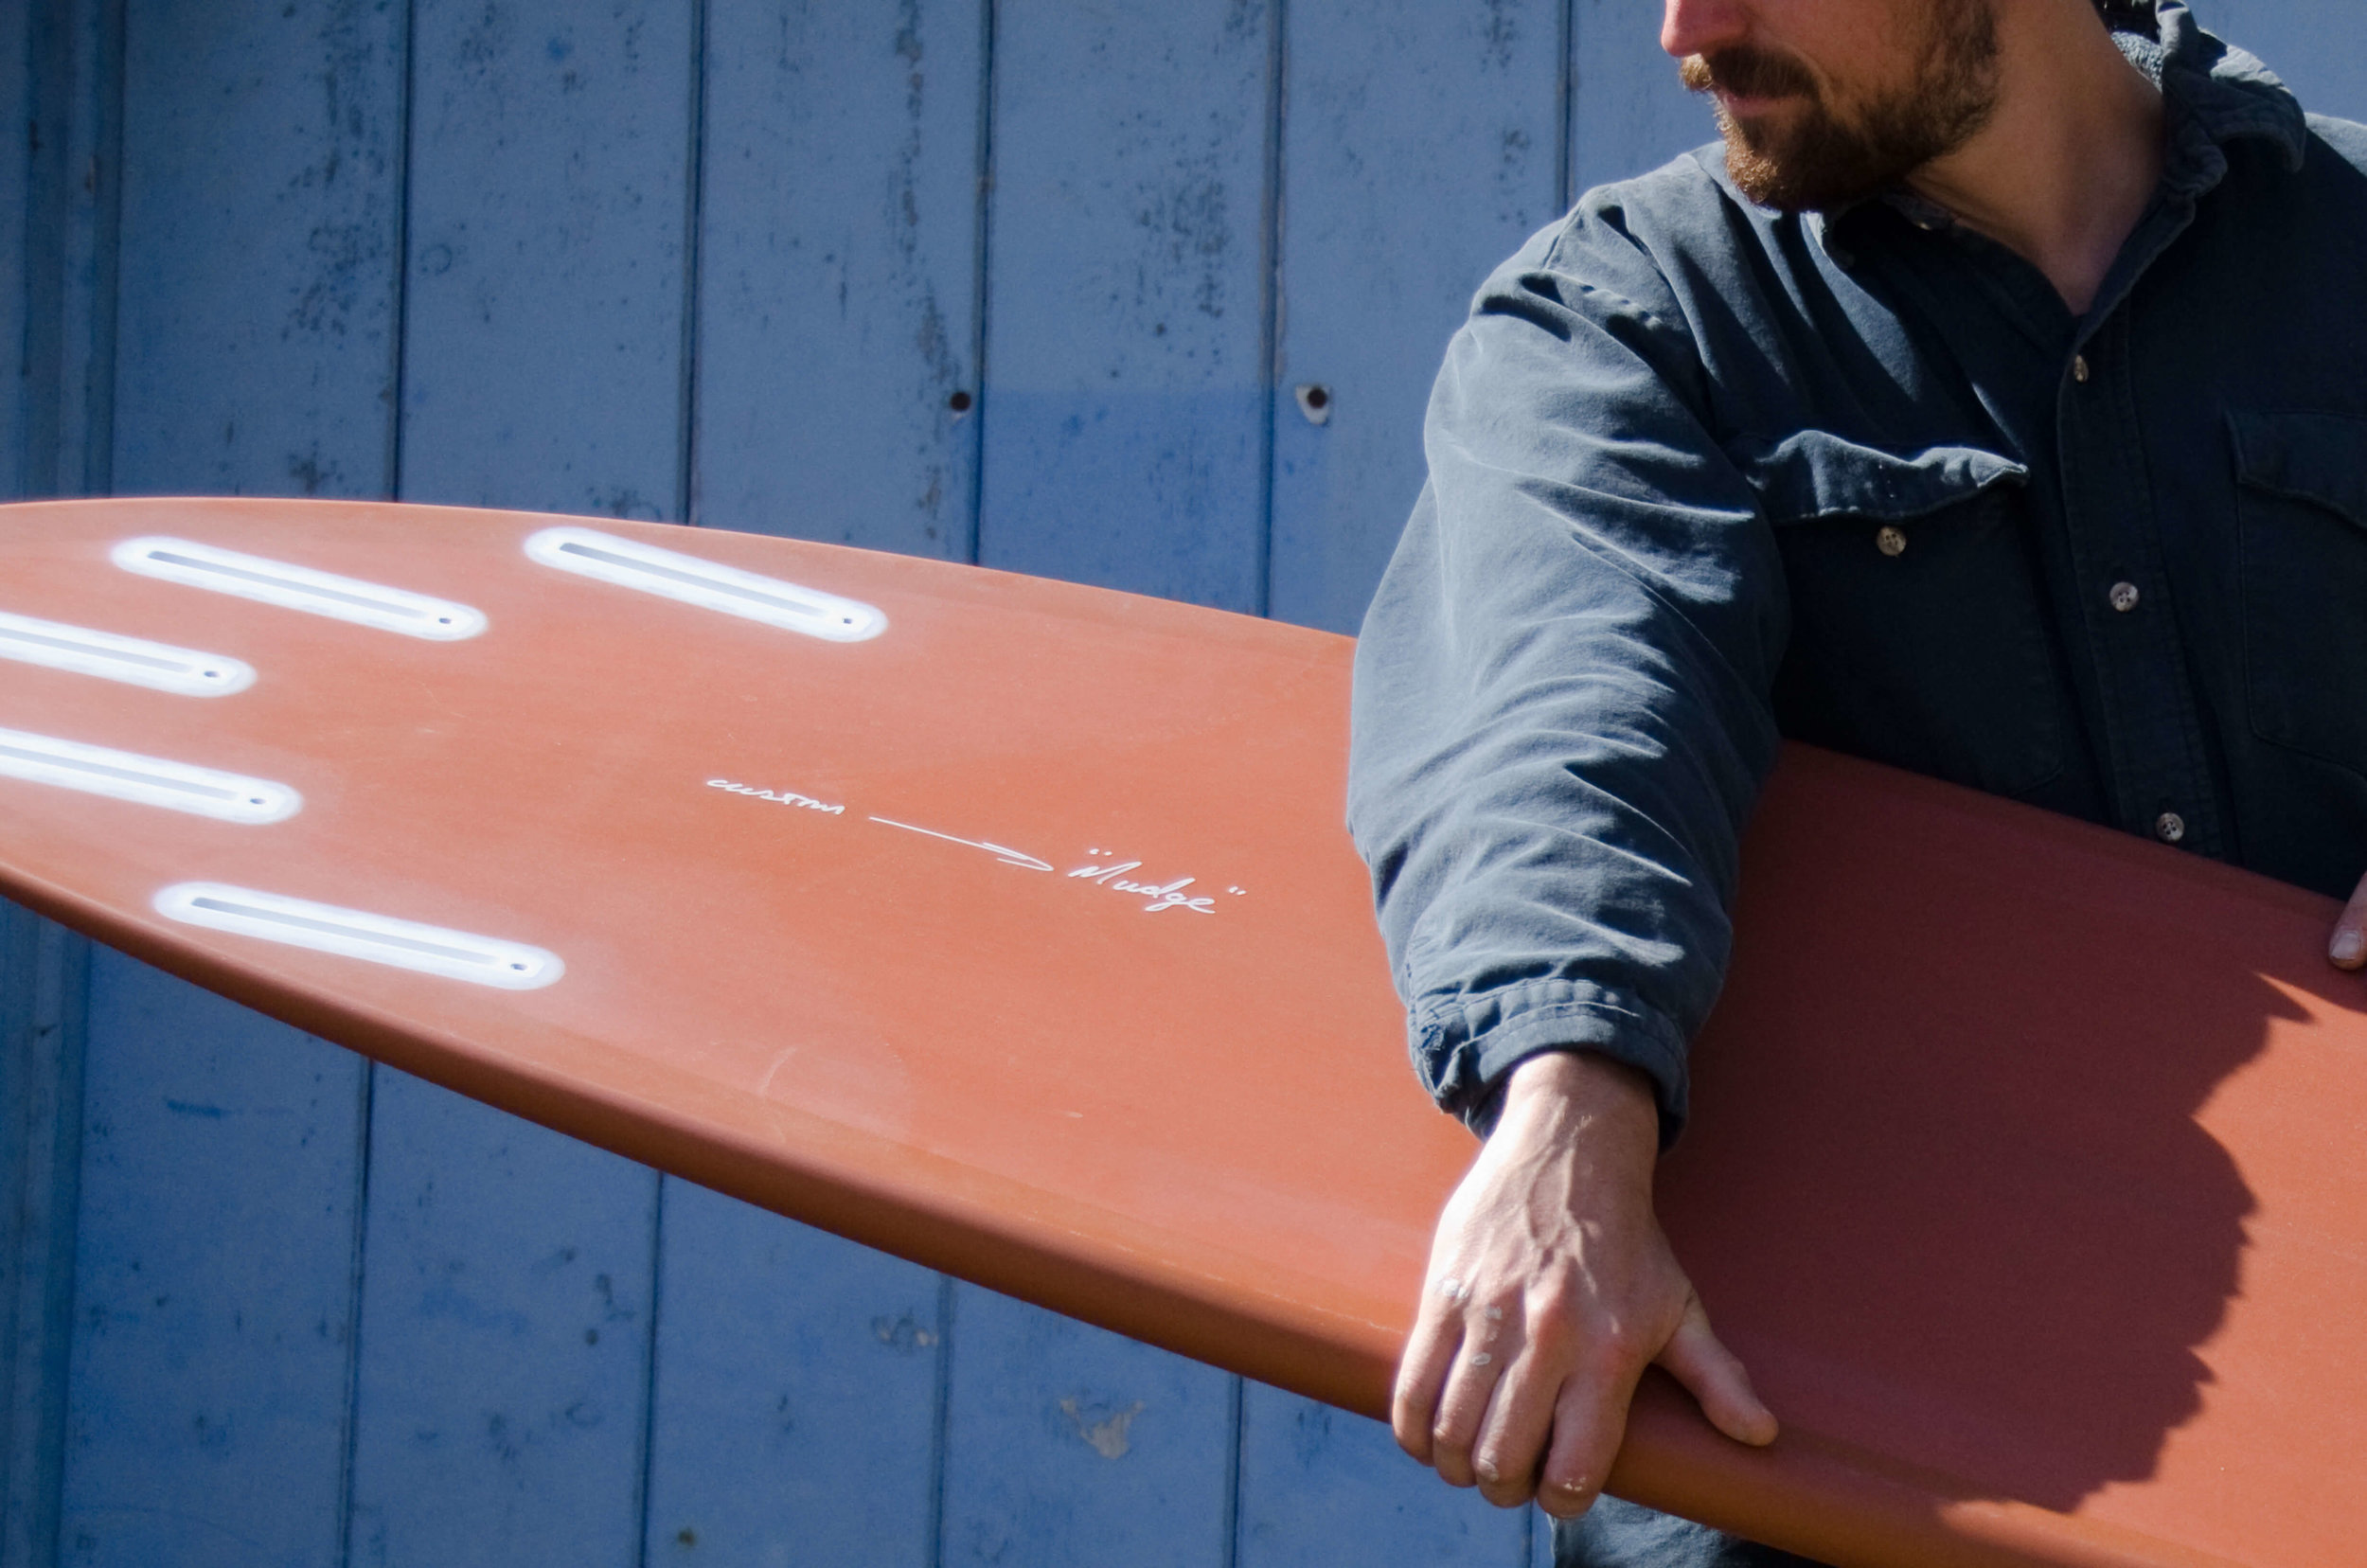 """The boards come from the people that know us best and we've built Roma to give you a starting point.Through some of the best craftsmen in the UK and a constant loop of feedback we have a tight quiver that showcases talent and creates infinite possibilities. - """"When you get to know a shaper you can recognize their work. There are elements of a board you see again and again and you trust them to be there next time. You can experiment with a point of reference""""."""